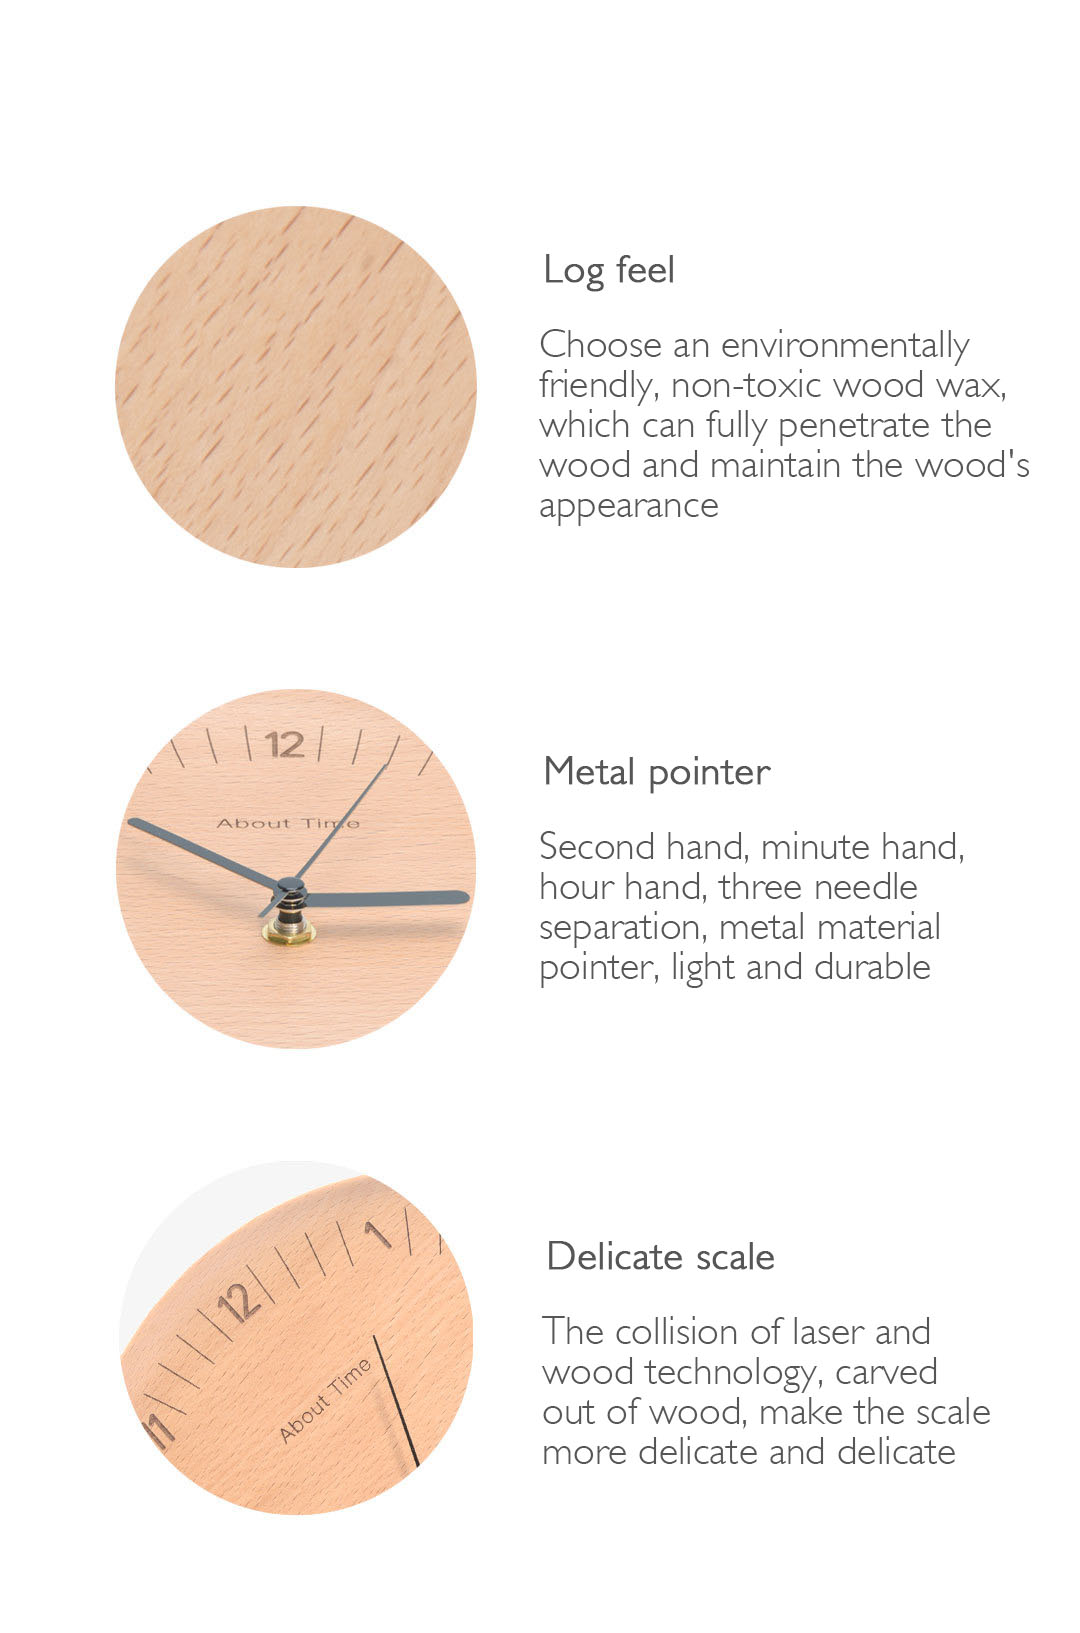 Xiaomi About Time Mute Logs Wooden Simple Wooden Metal Pointer Wall Clock Home Decoration